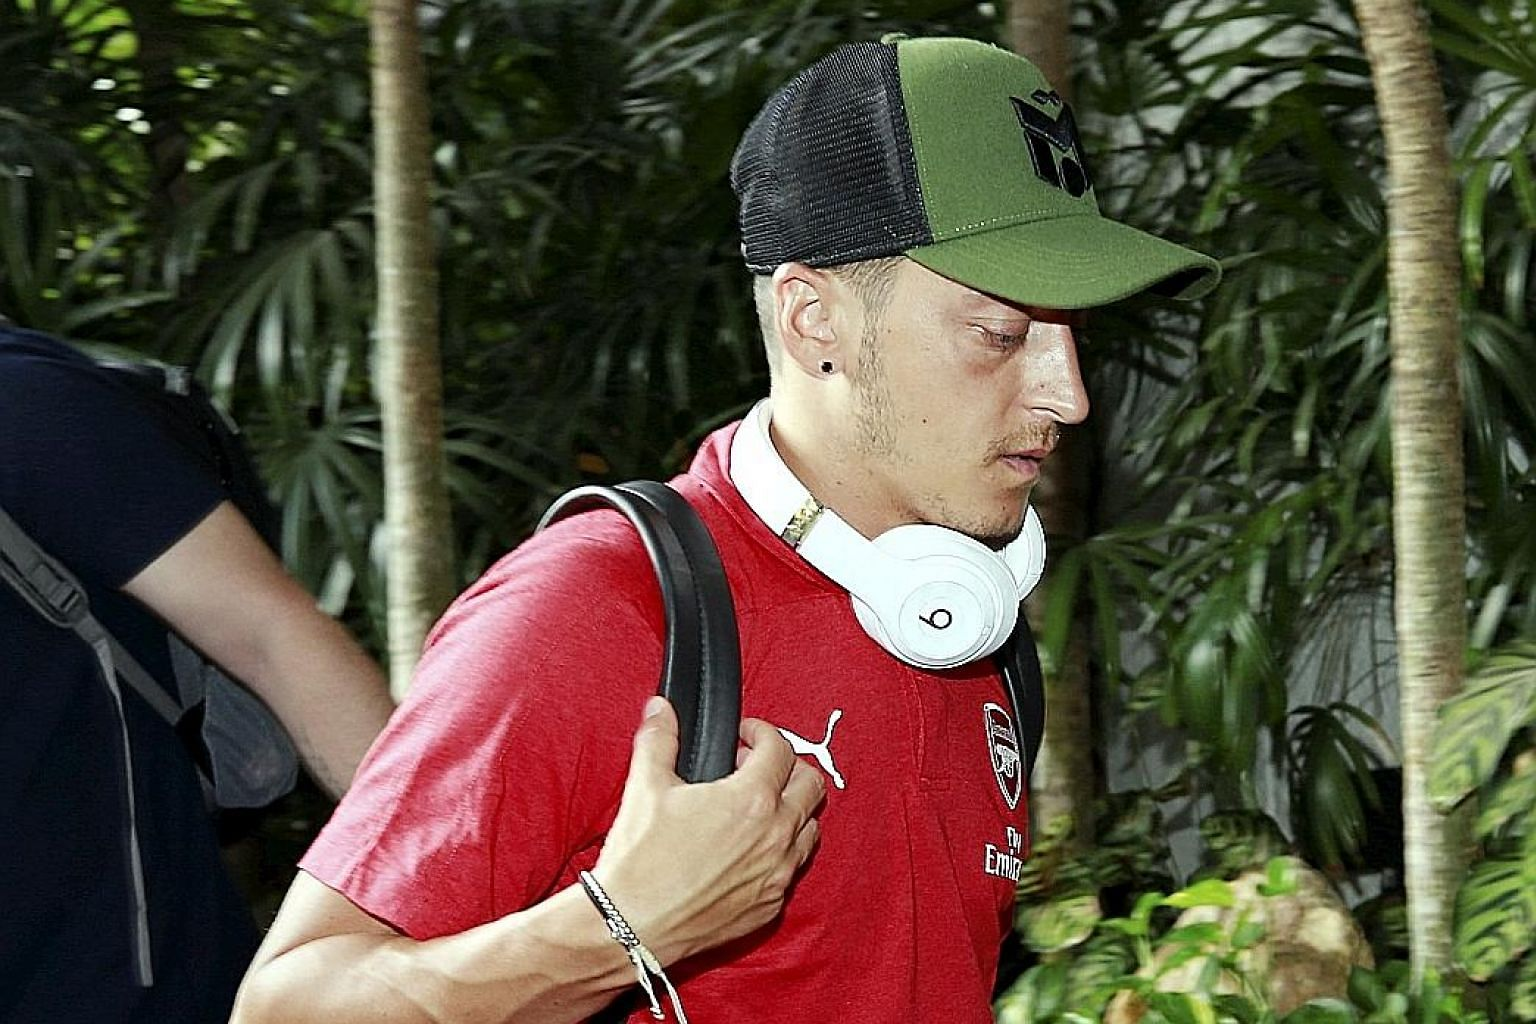 Arsenal midfielder Mesut Ozil arriving in Singapore yesterday for this week's International Champions Cup. The German announced his retirement from international duty on Sunday, accusing German FA president Reinhard Grindel of racism.